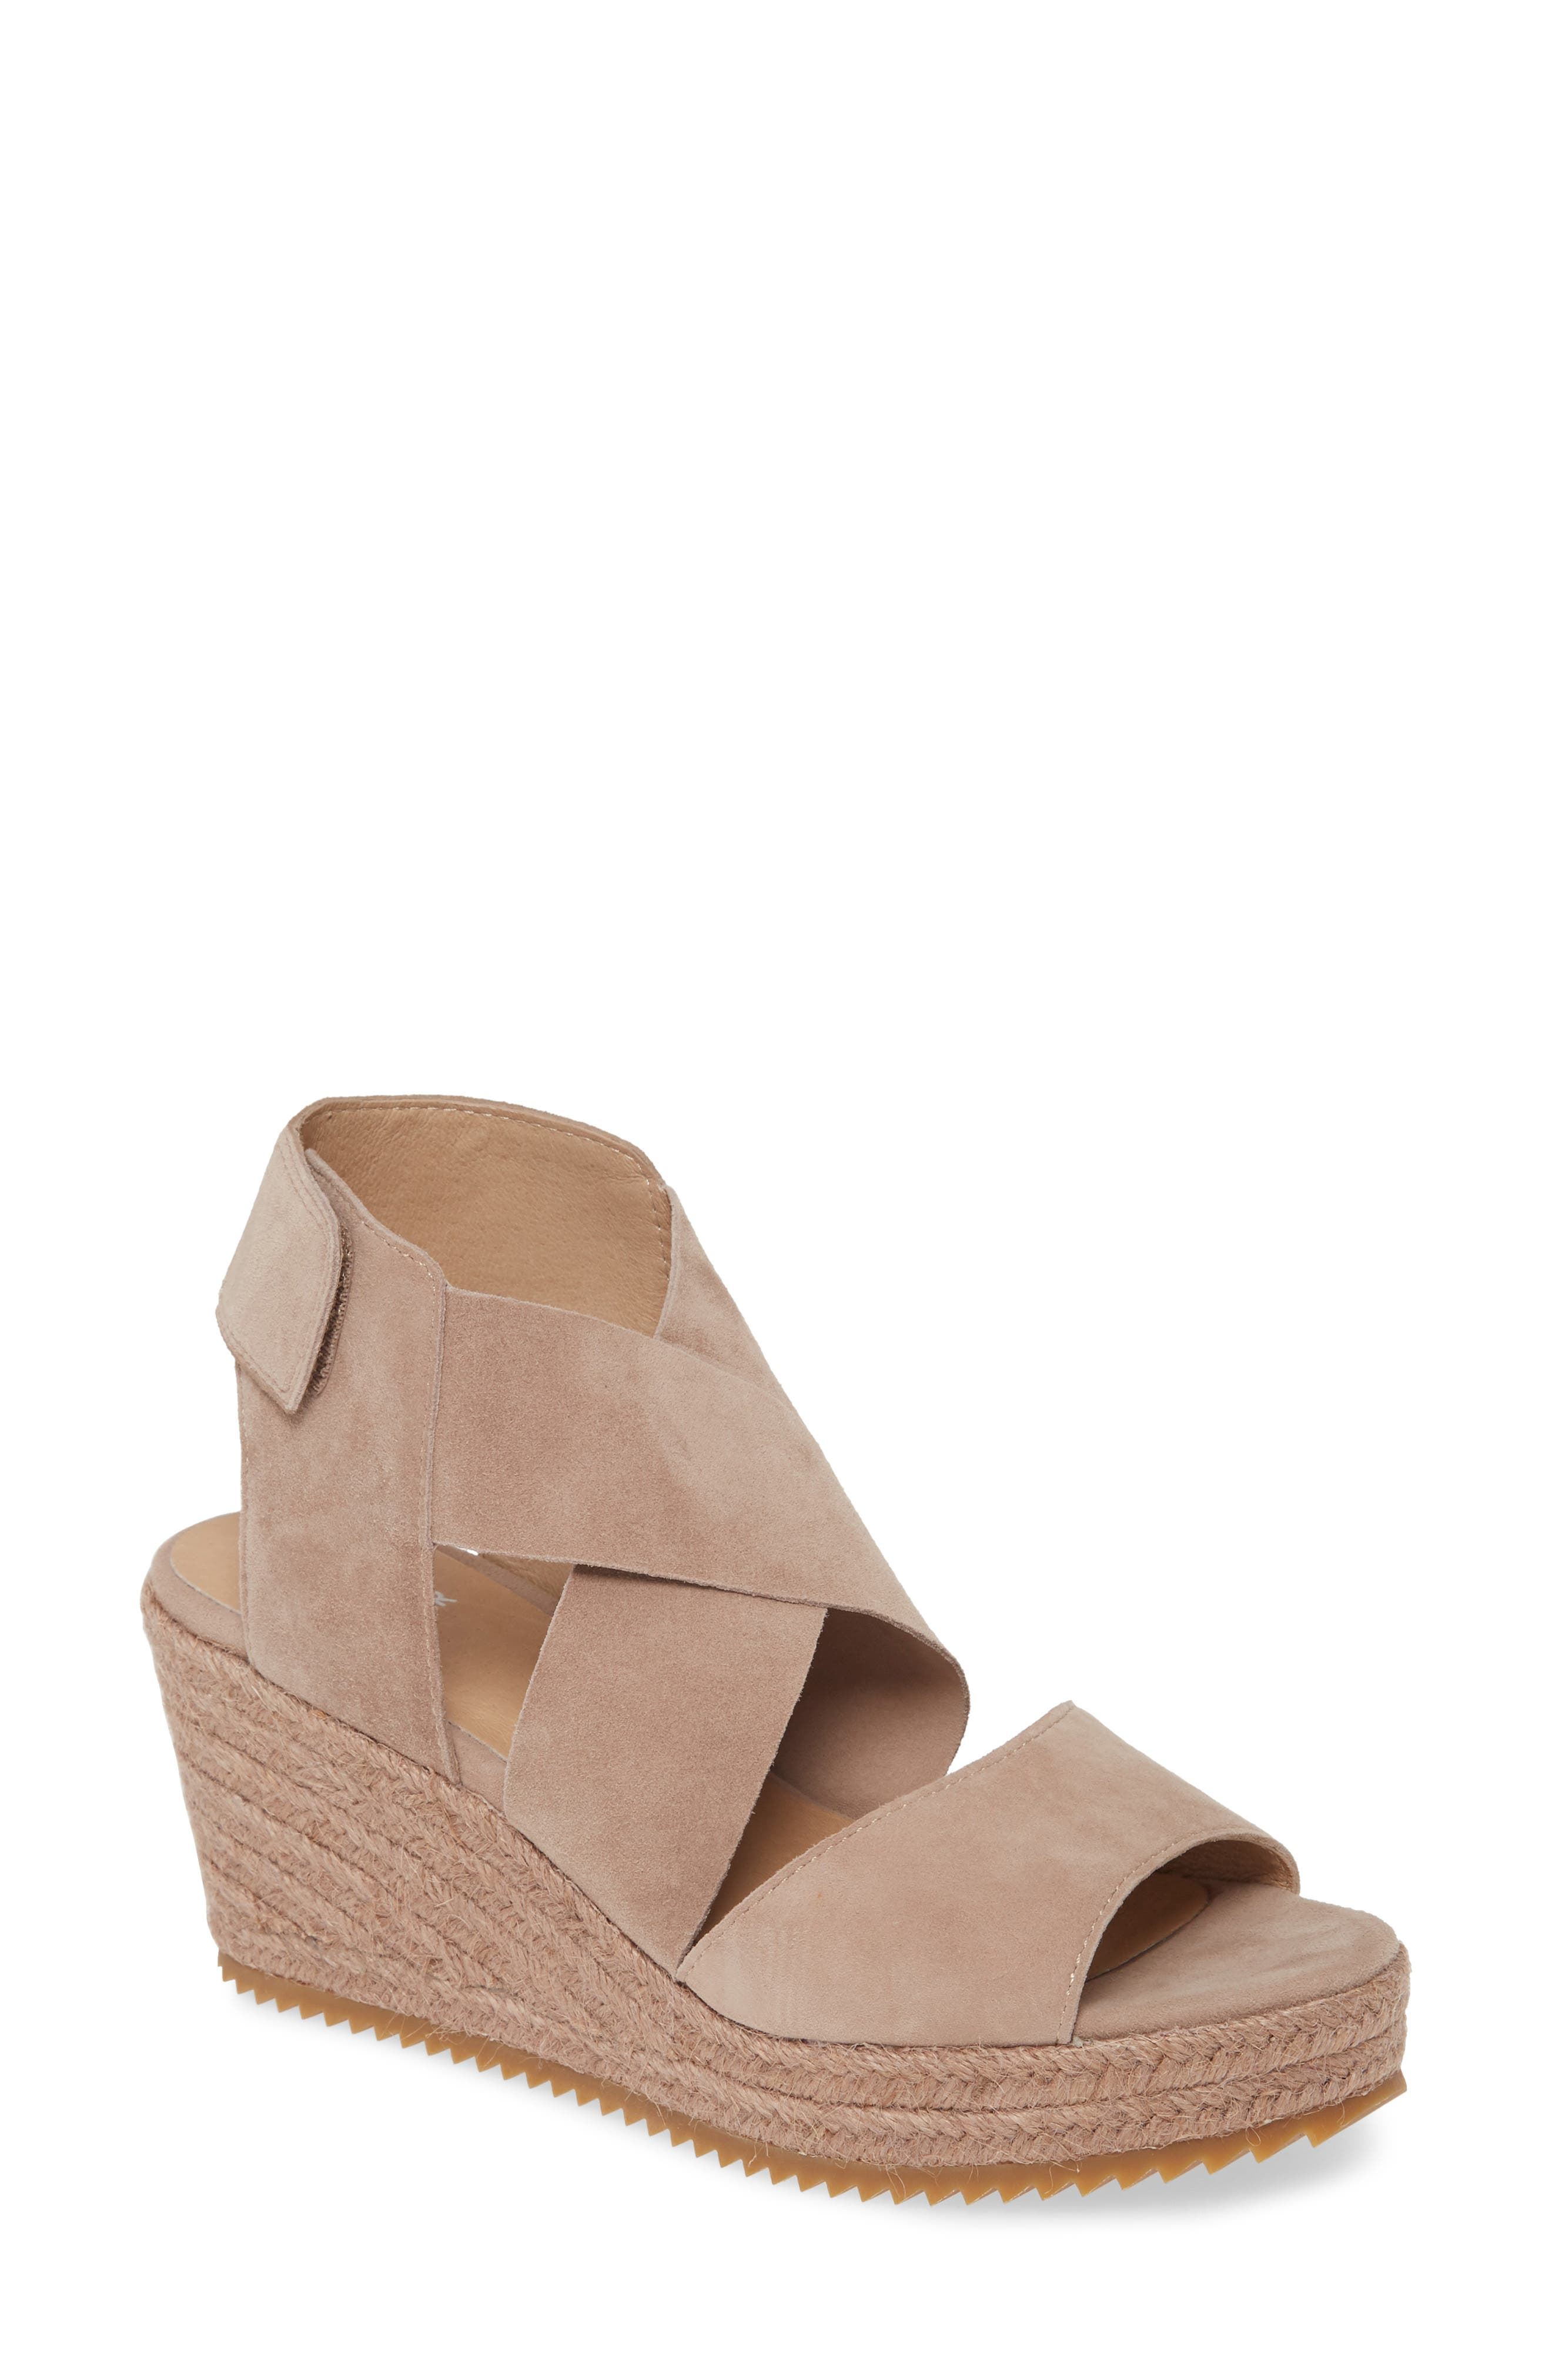 Eileen Fisher Willow Strappy Wedge